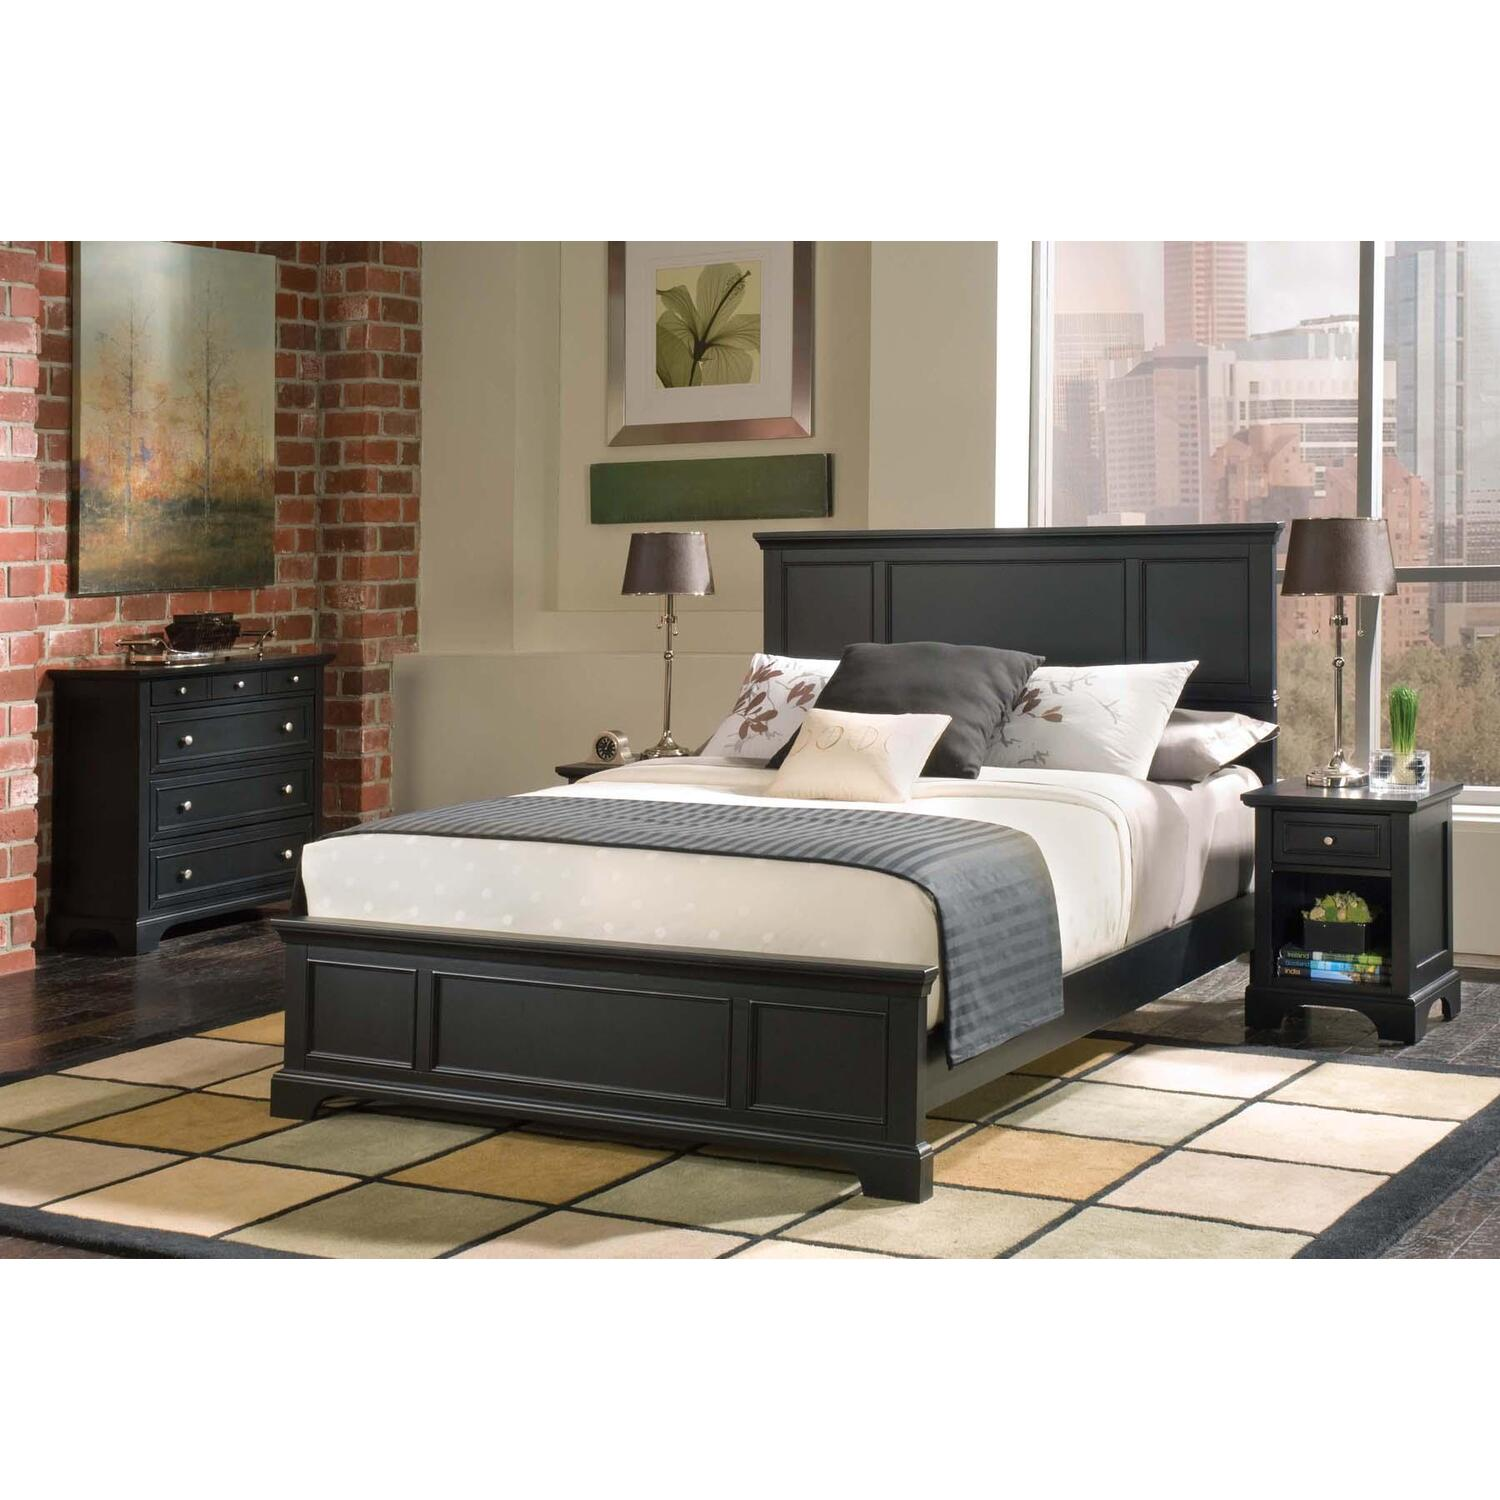 Home styles bedford queen bed night stand and chest by for Queen size bedroom sets with mattress